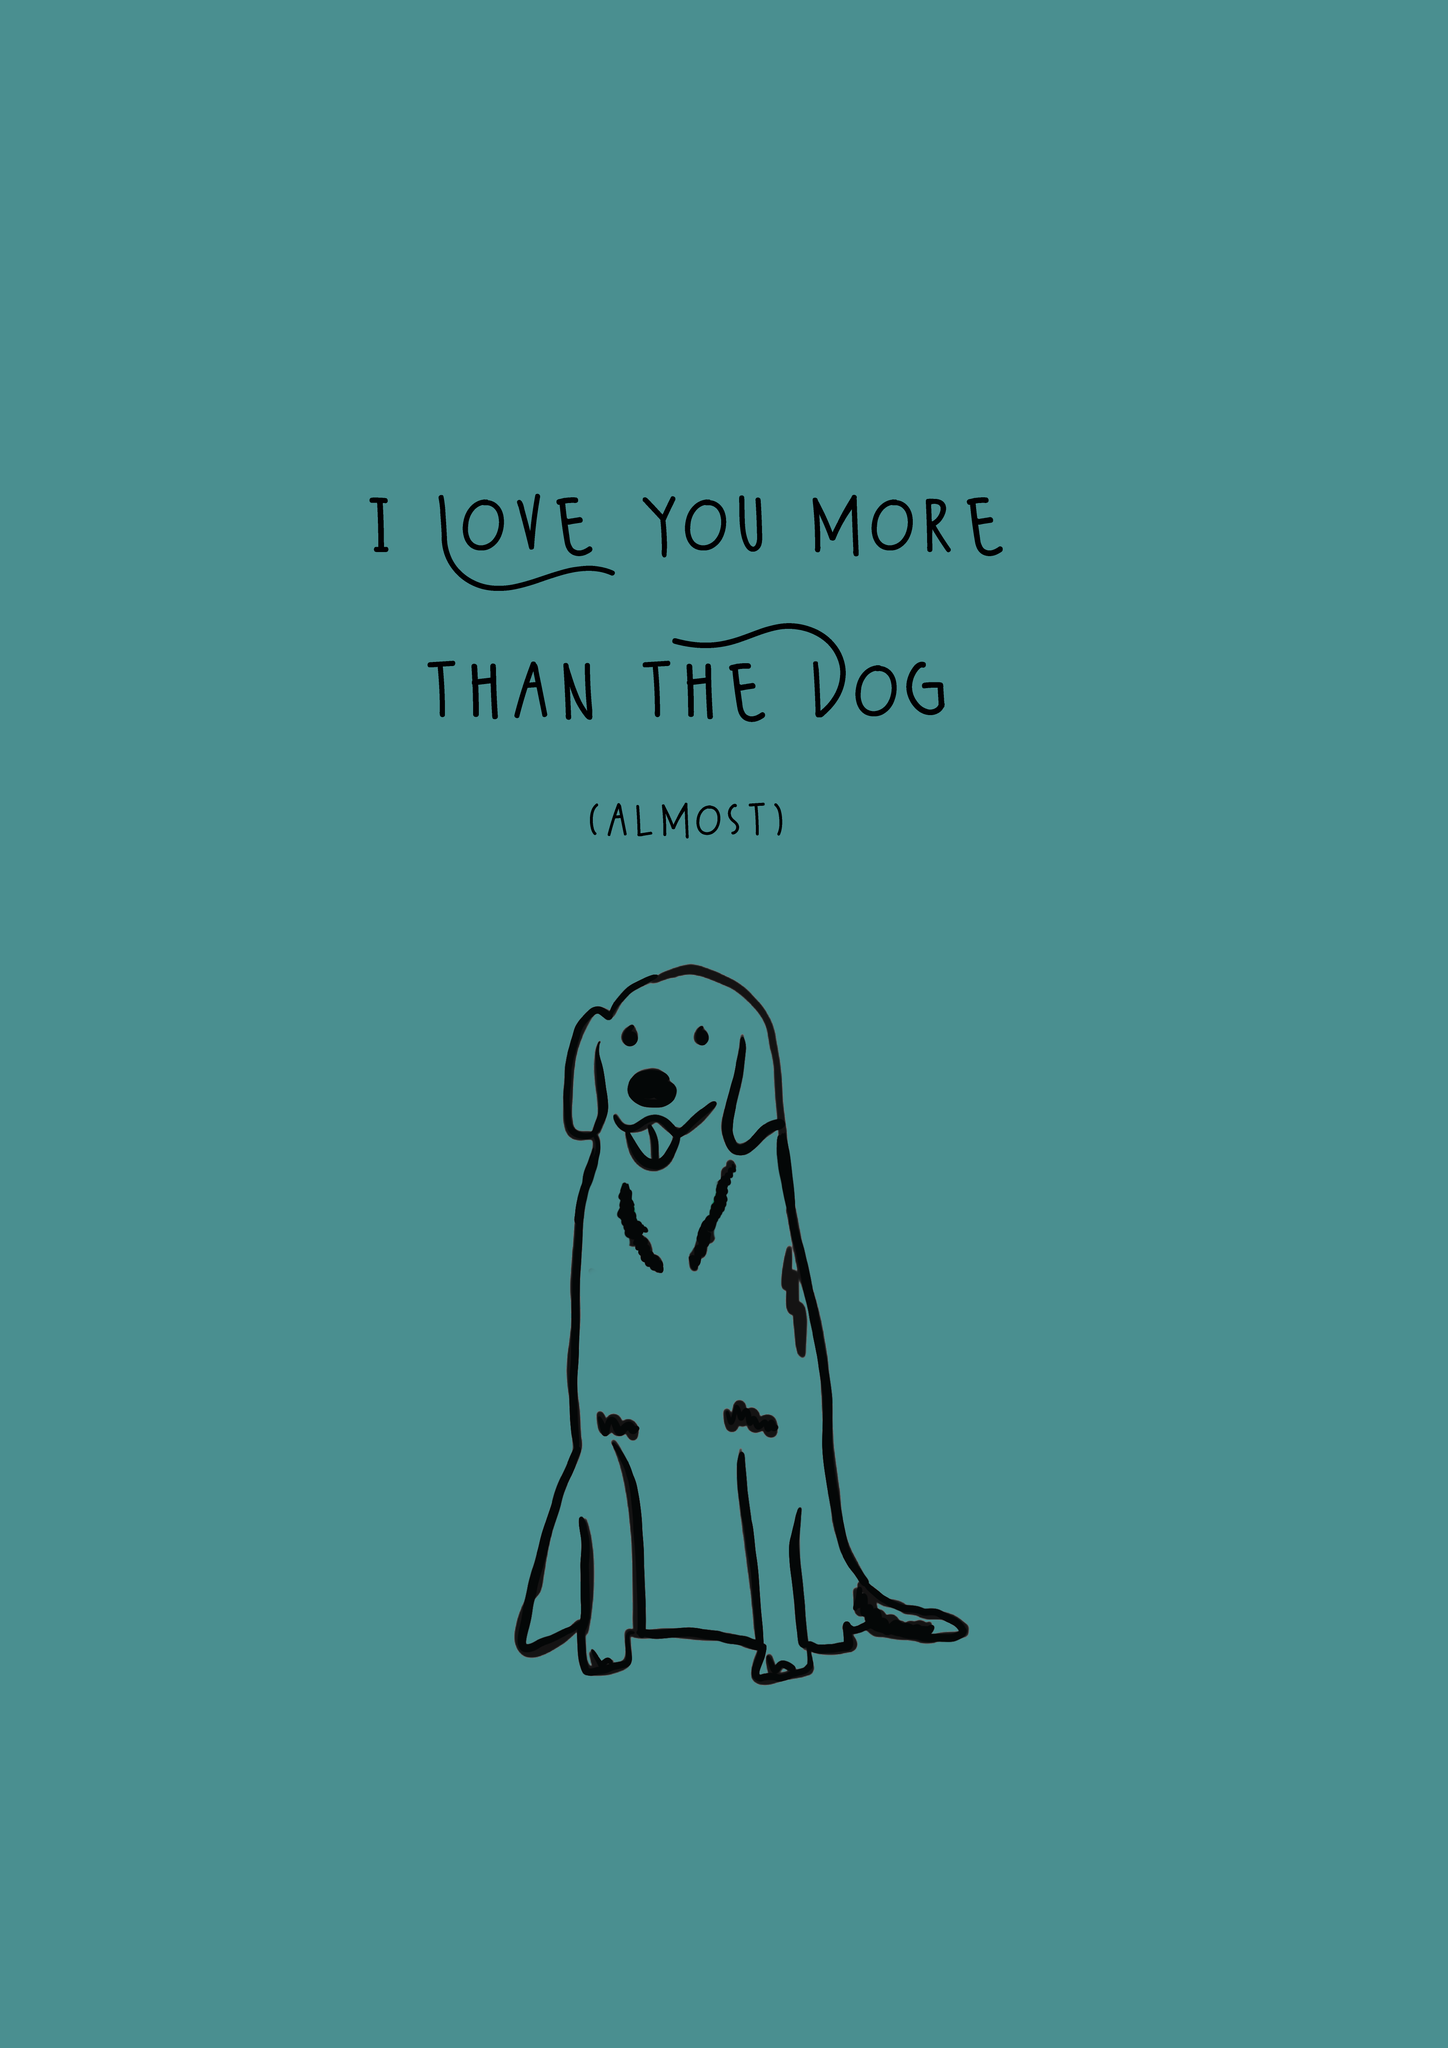 Love You More Than The Dog - Lucy Brown Designs